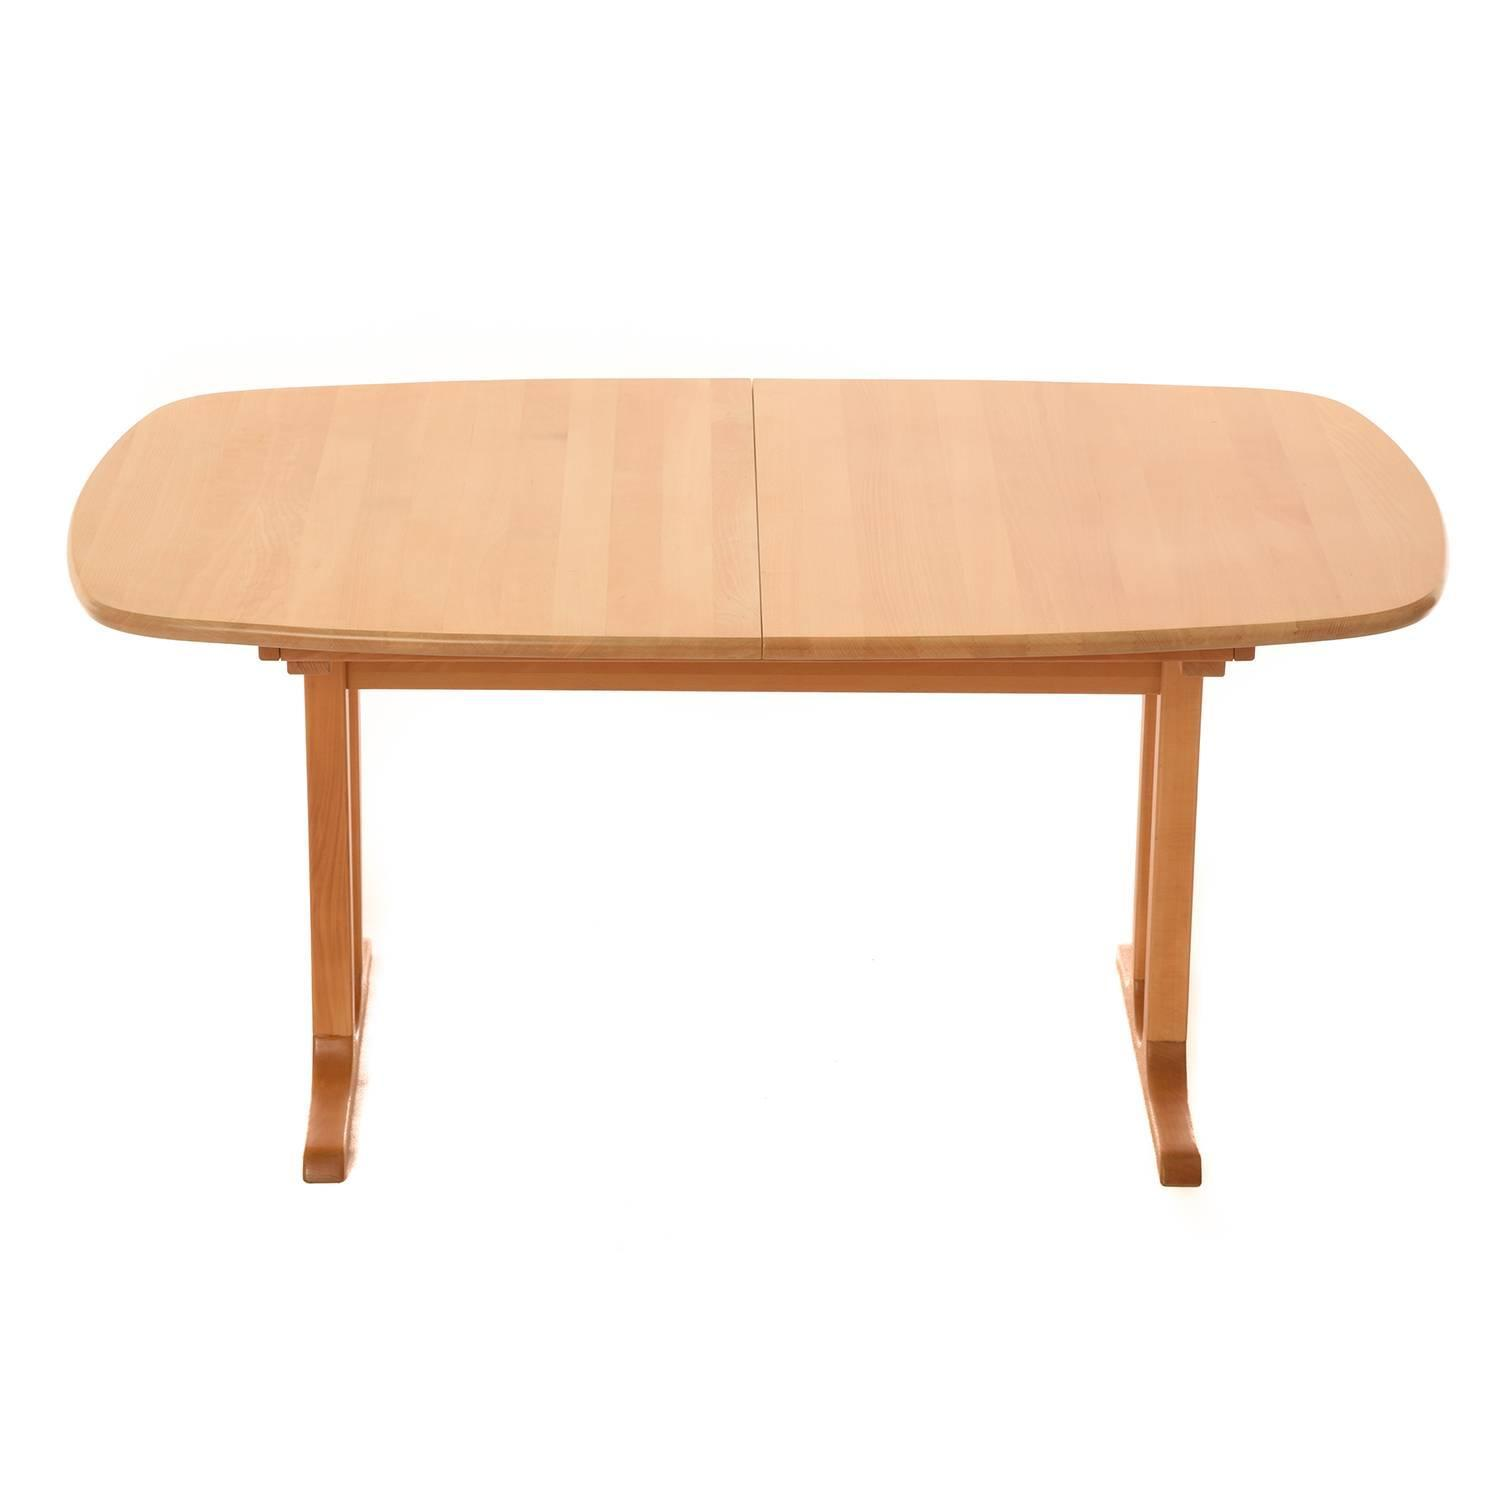 Danish modern pedestal dining table at 1stdibs for Danish modern dining room table